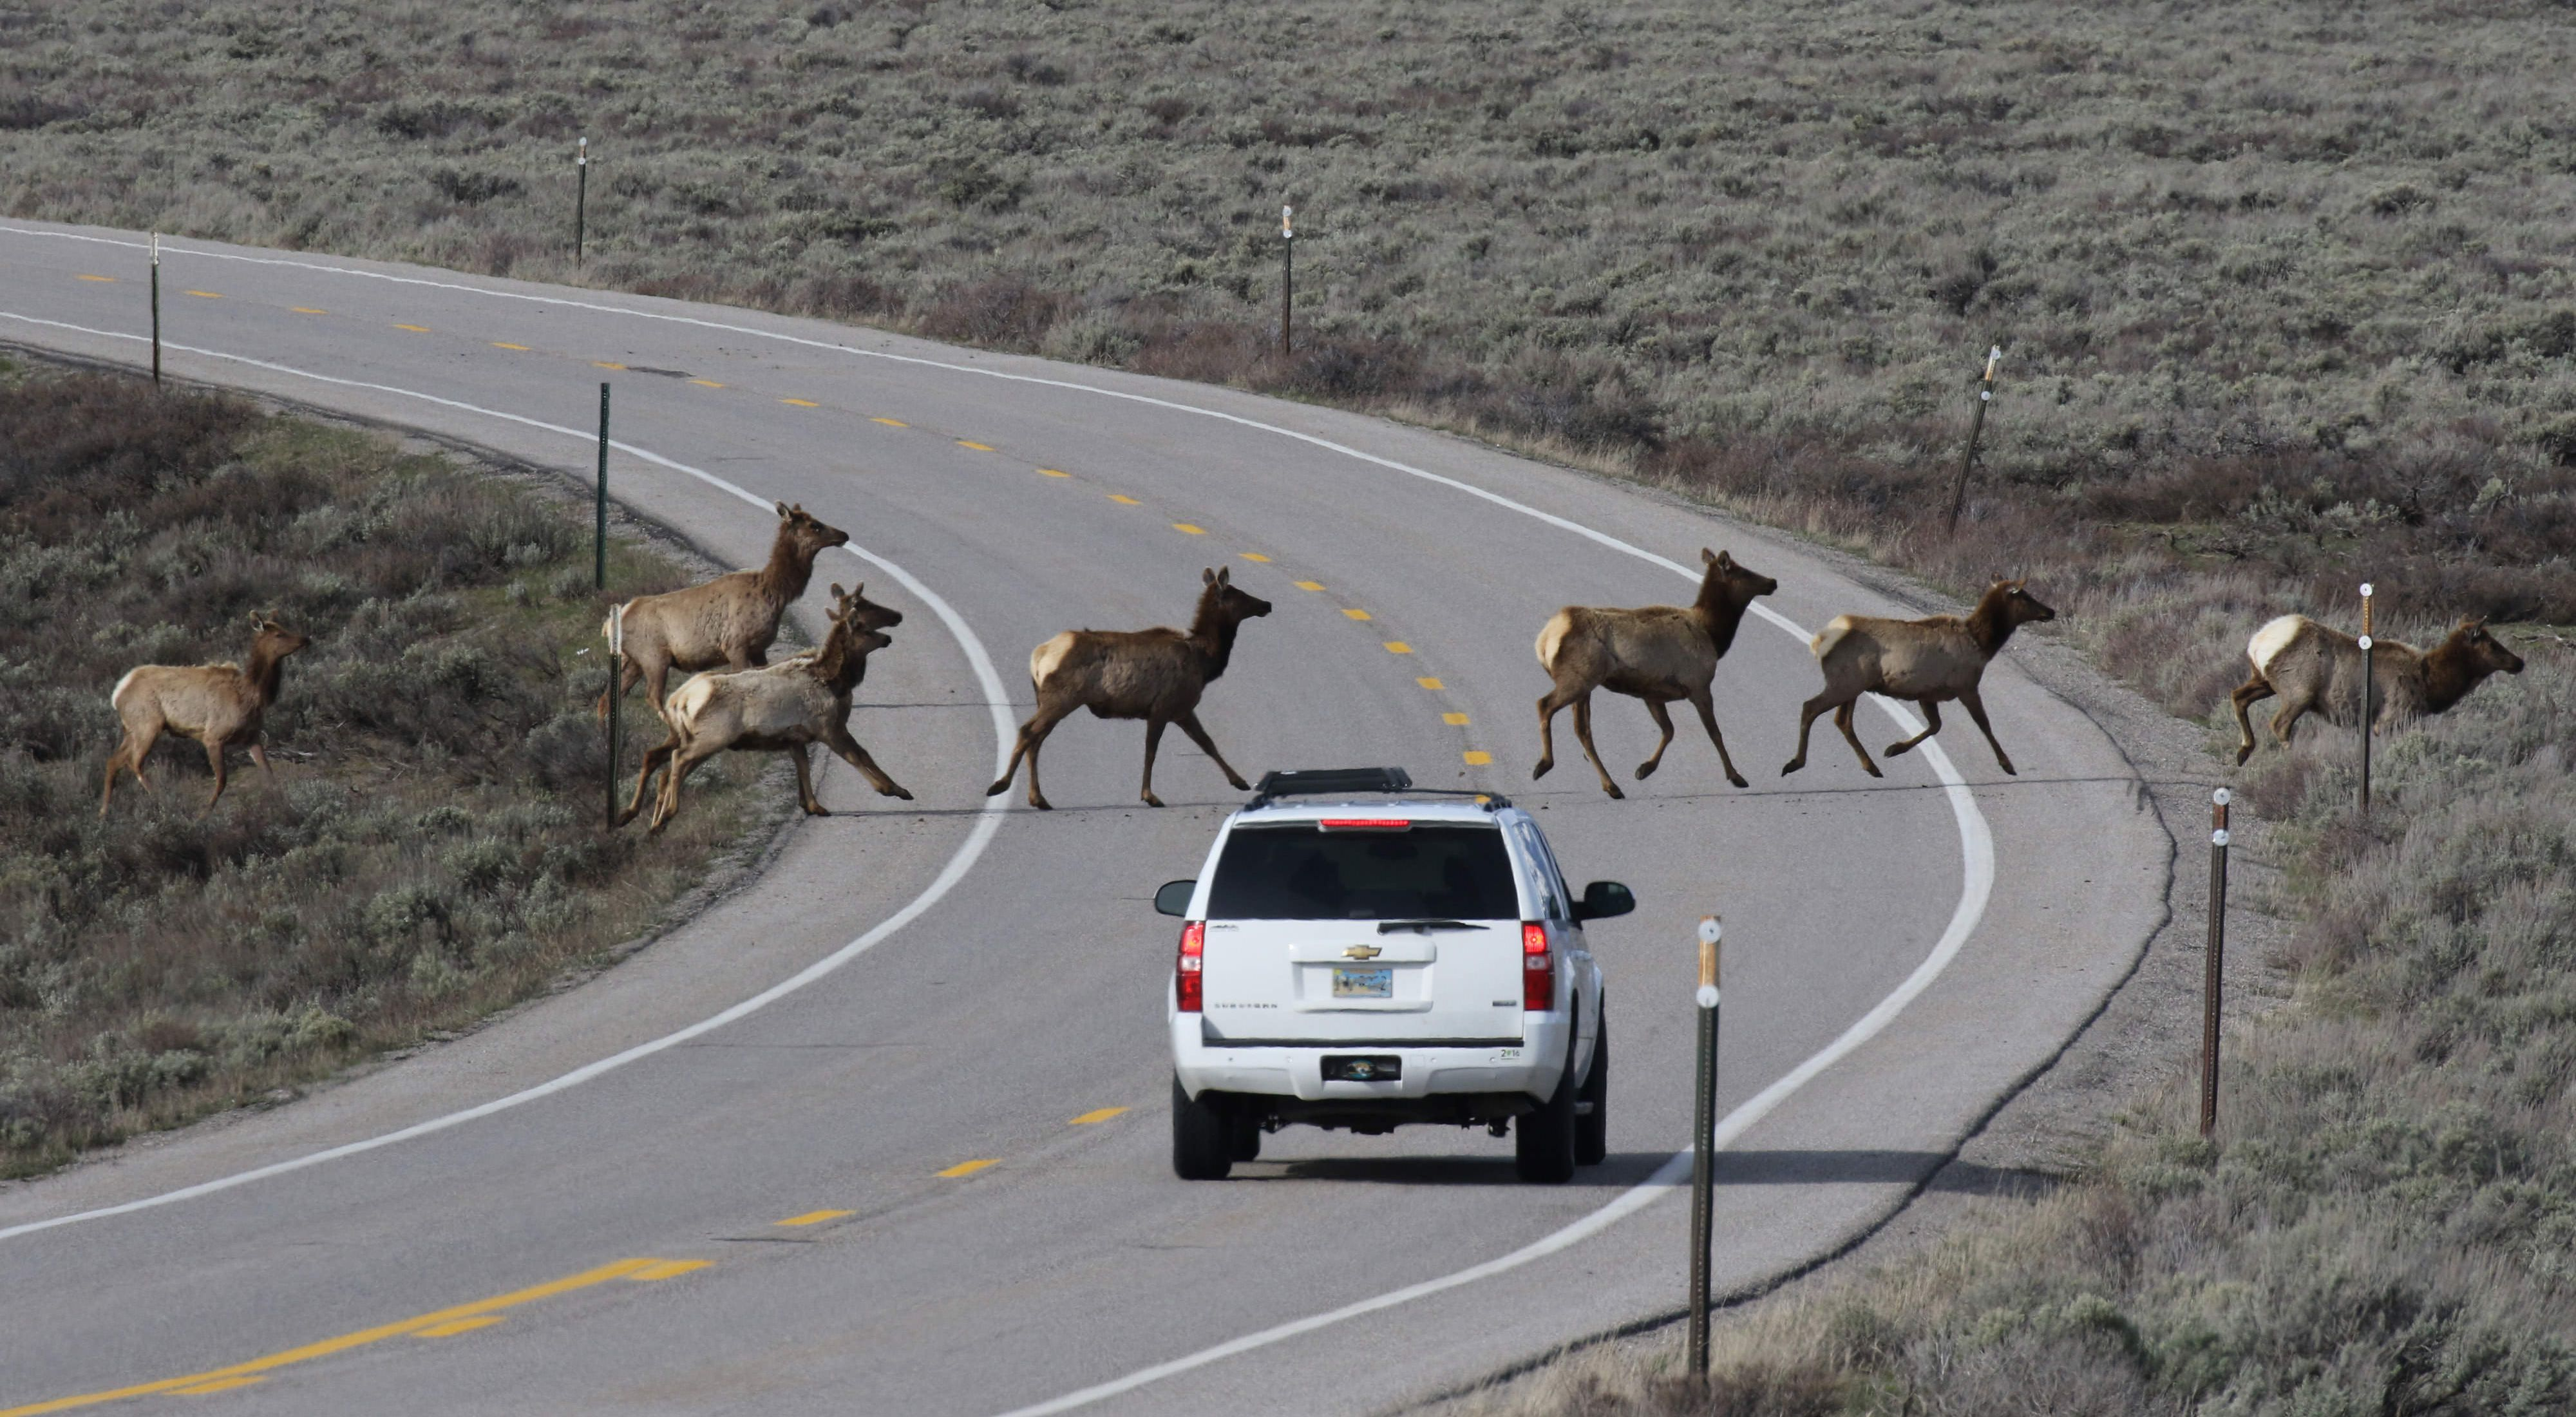 Elk crossing a road while a white SUV waits patiently.